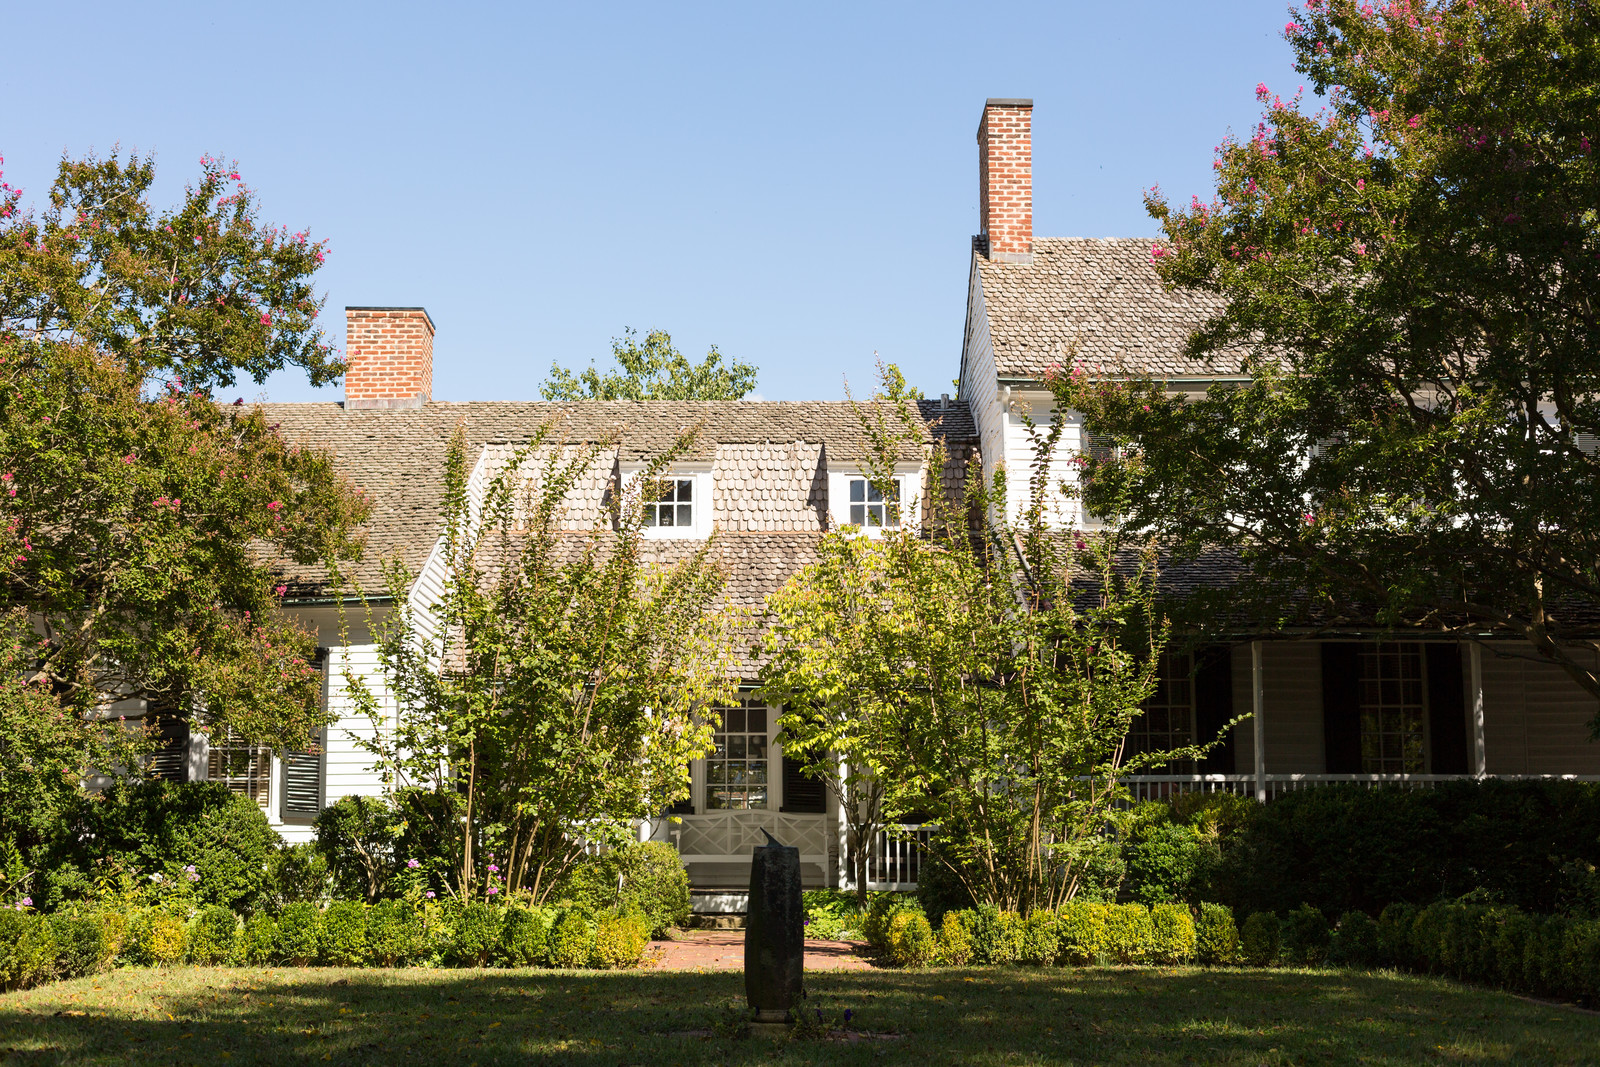 Mary Washington's house, mother of the president, located in Fredericksburg Virginia